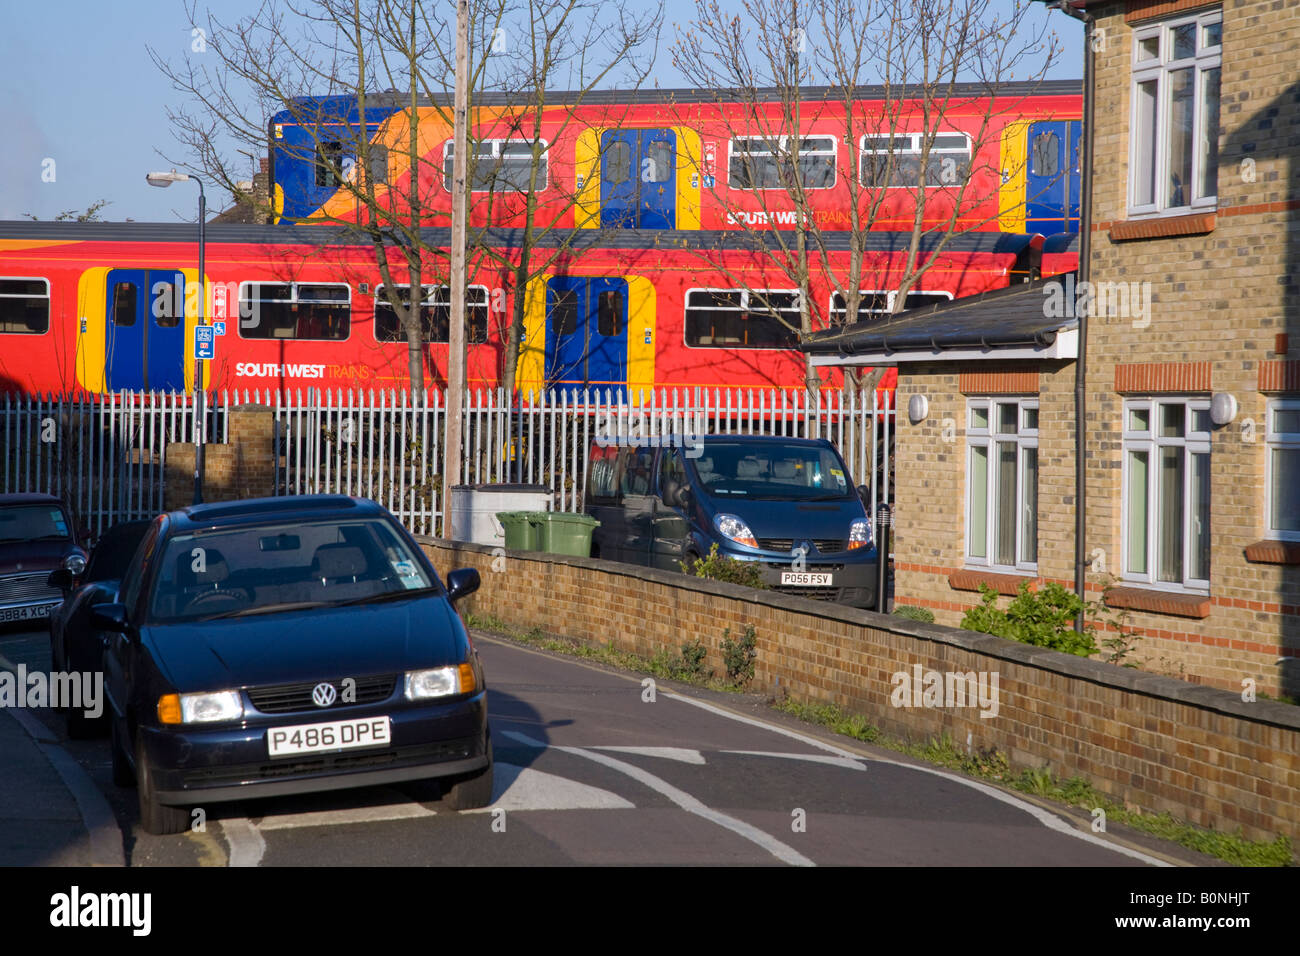 Two passing trains passing in a residential area, on different tracks, and near parked cars. Twickenham, West London. - Stock Image